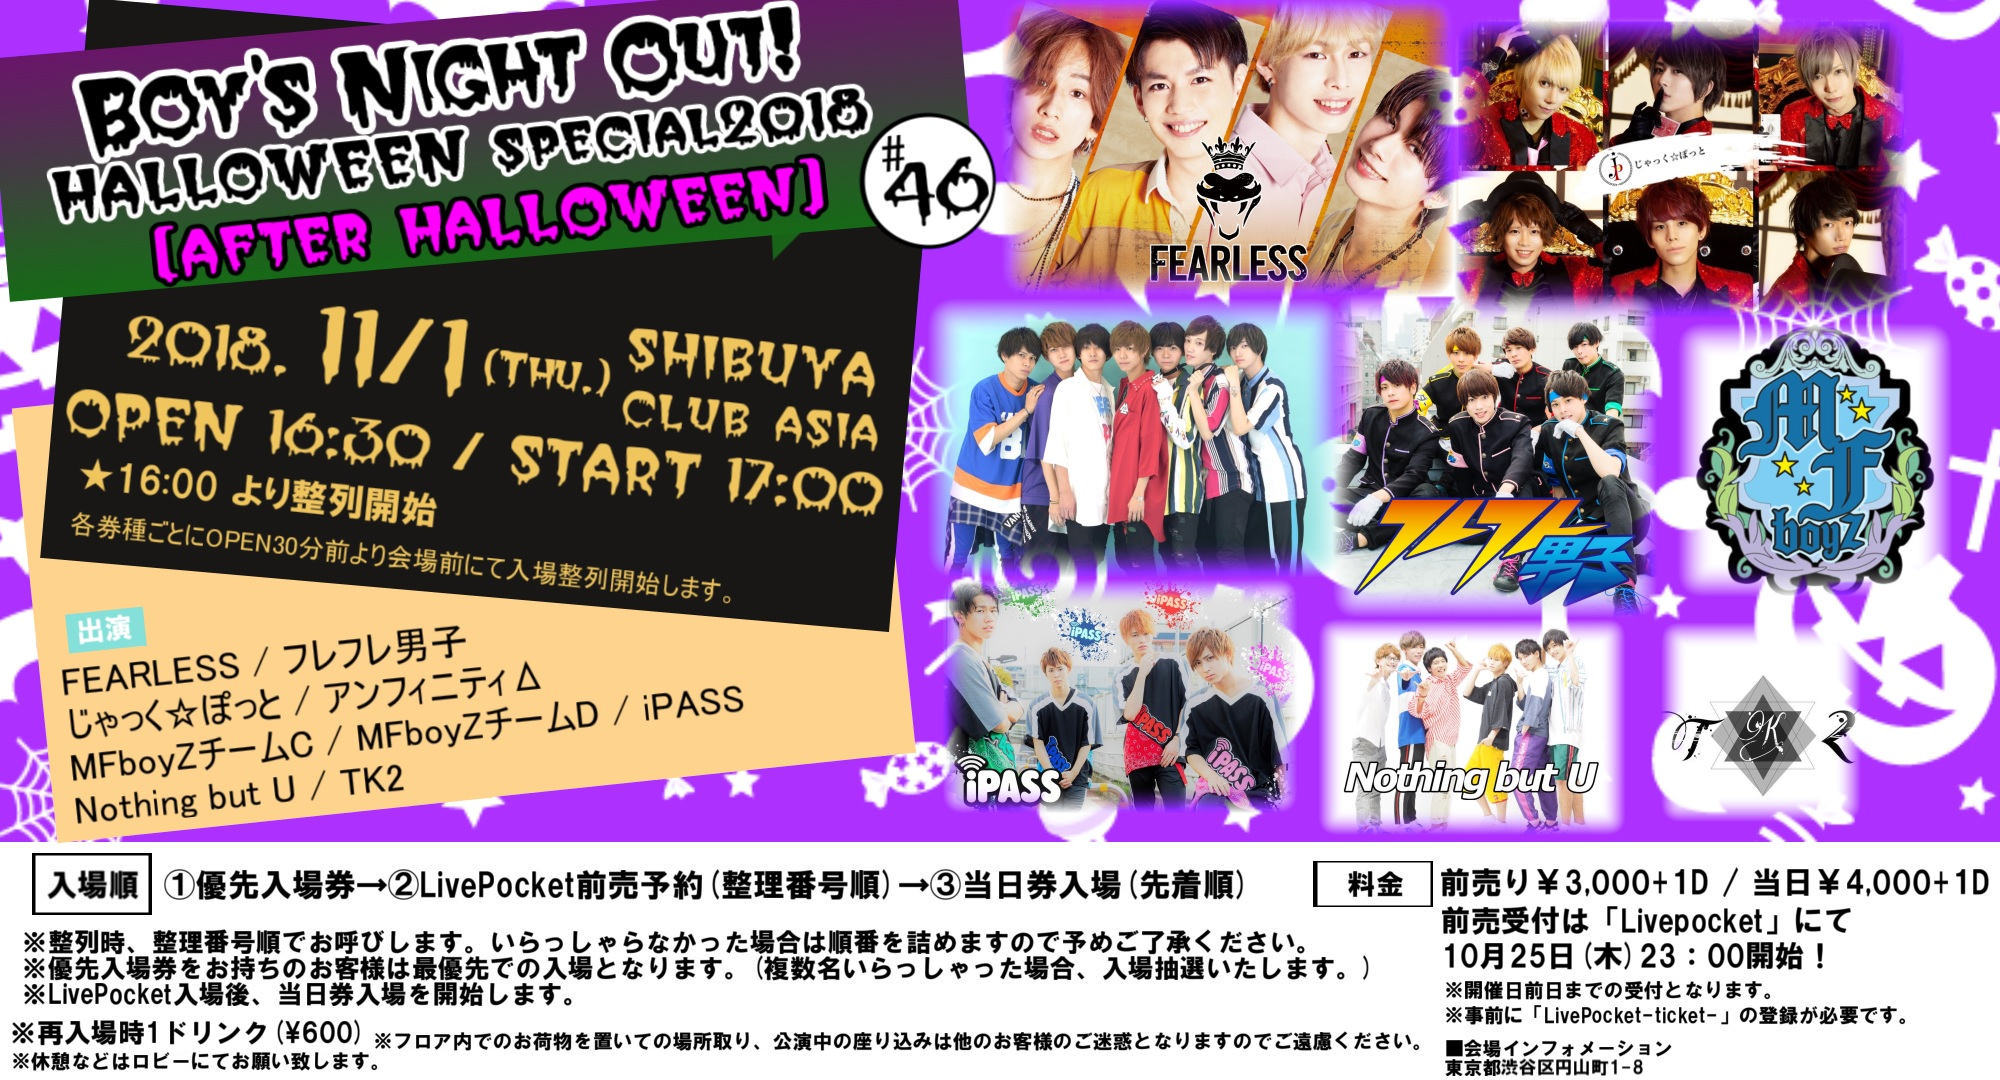 Boy's Night Out!#46~HALLOWEEN special2018【AFTER HALLOWEEN】~